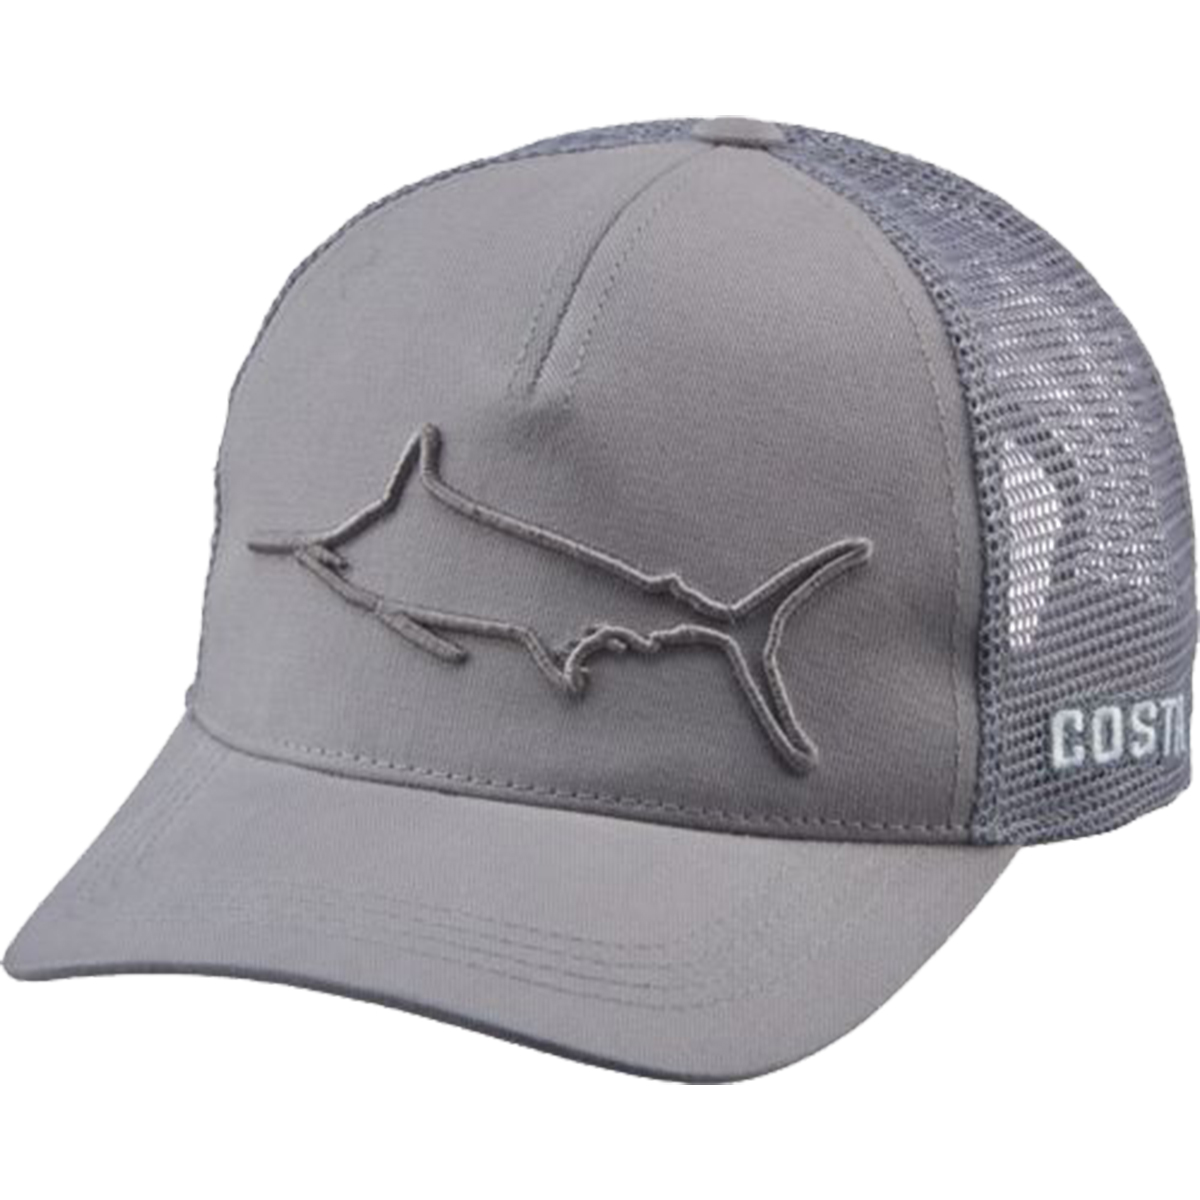 d8642015f19 Costa Del Mar Marlin Shield Trucker Hat - Blue- Fishing Cap -Free Shipping